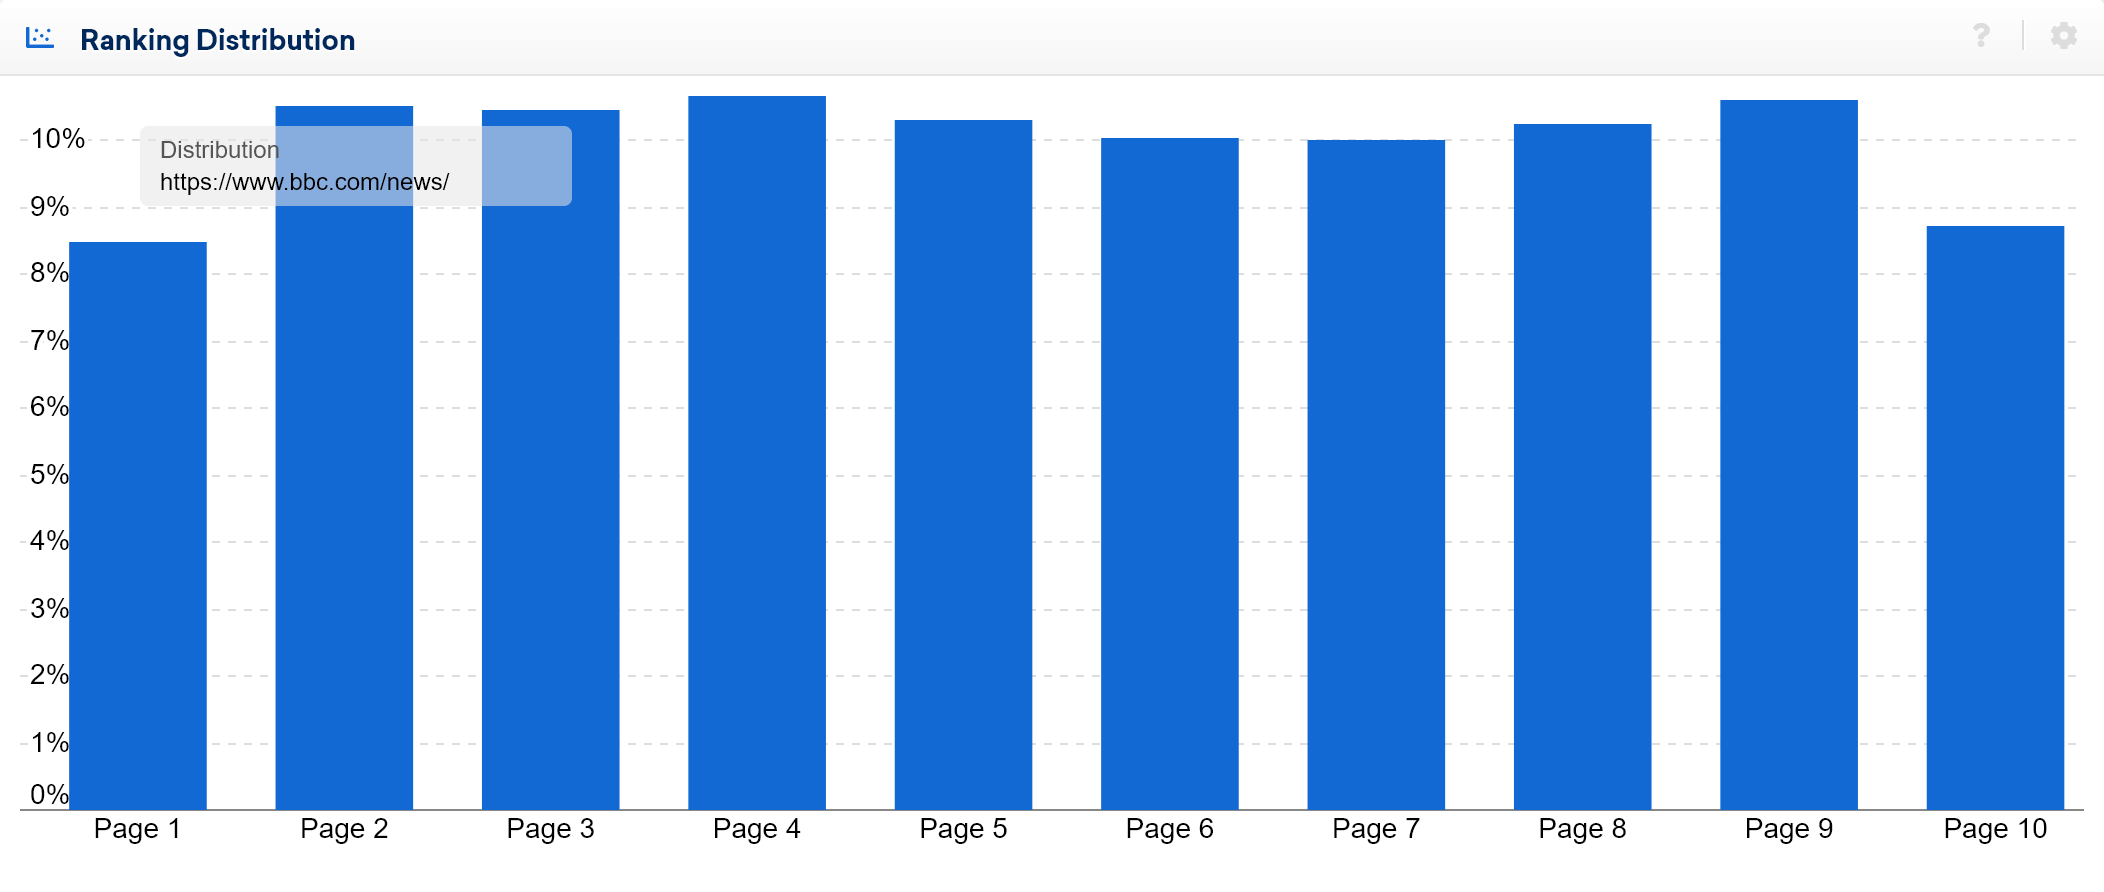 An example of an average ranking distribution